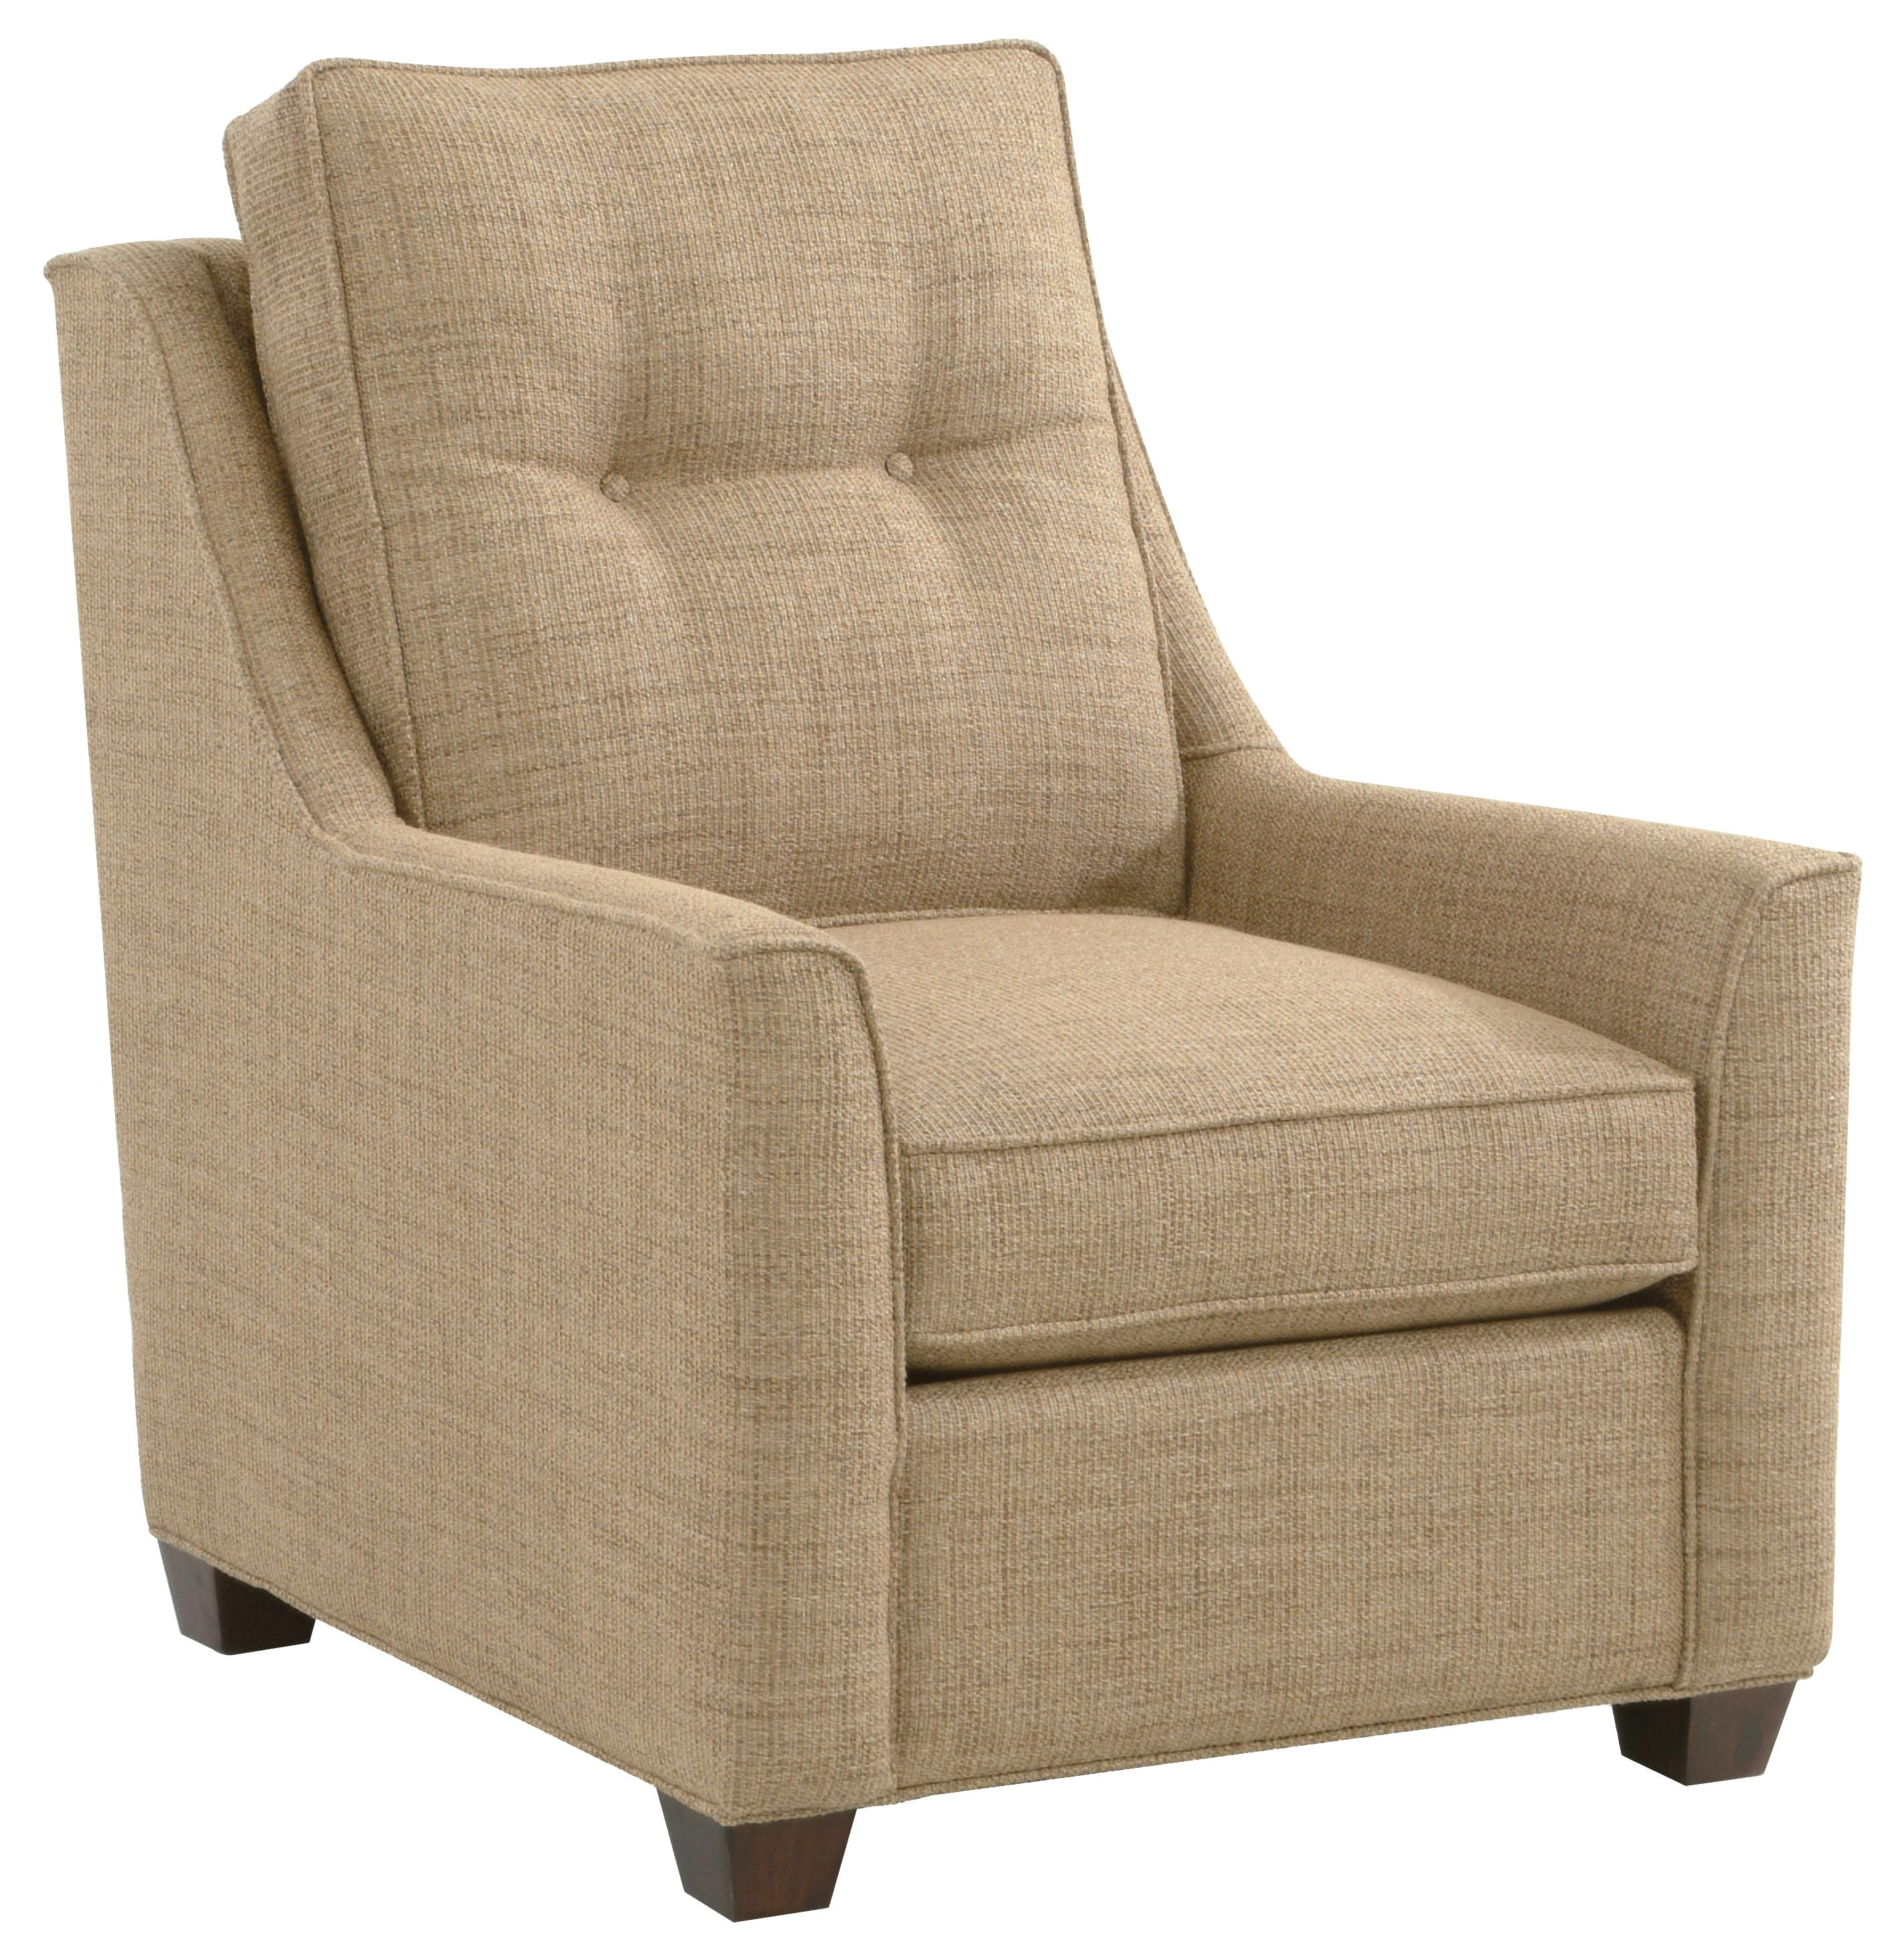 745  Upholstered Accent Chair by Braxton Culler at Esprit Decor Home Furnishings